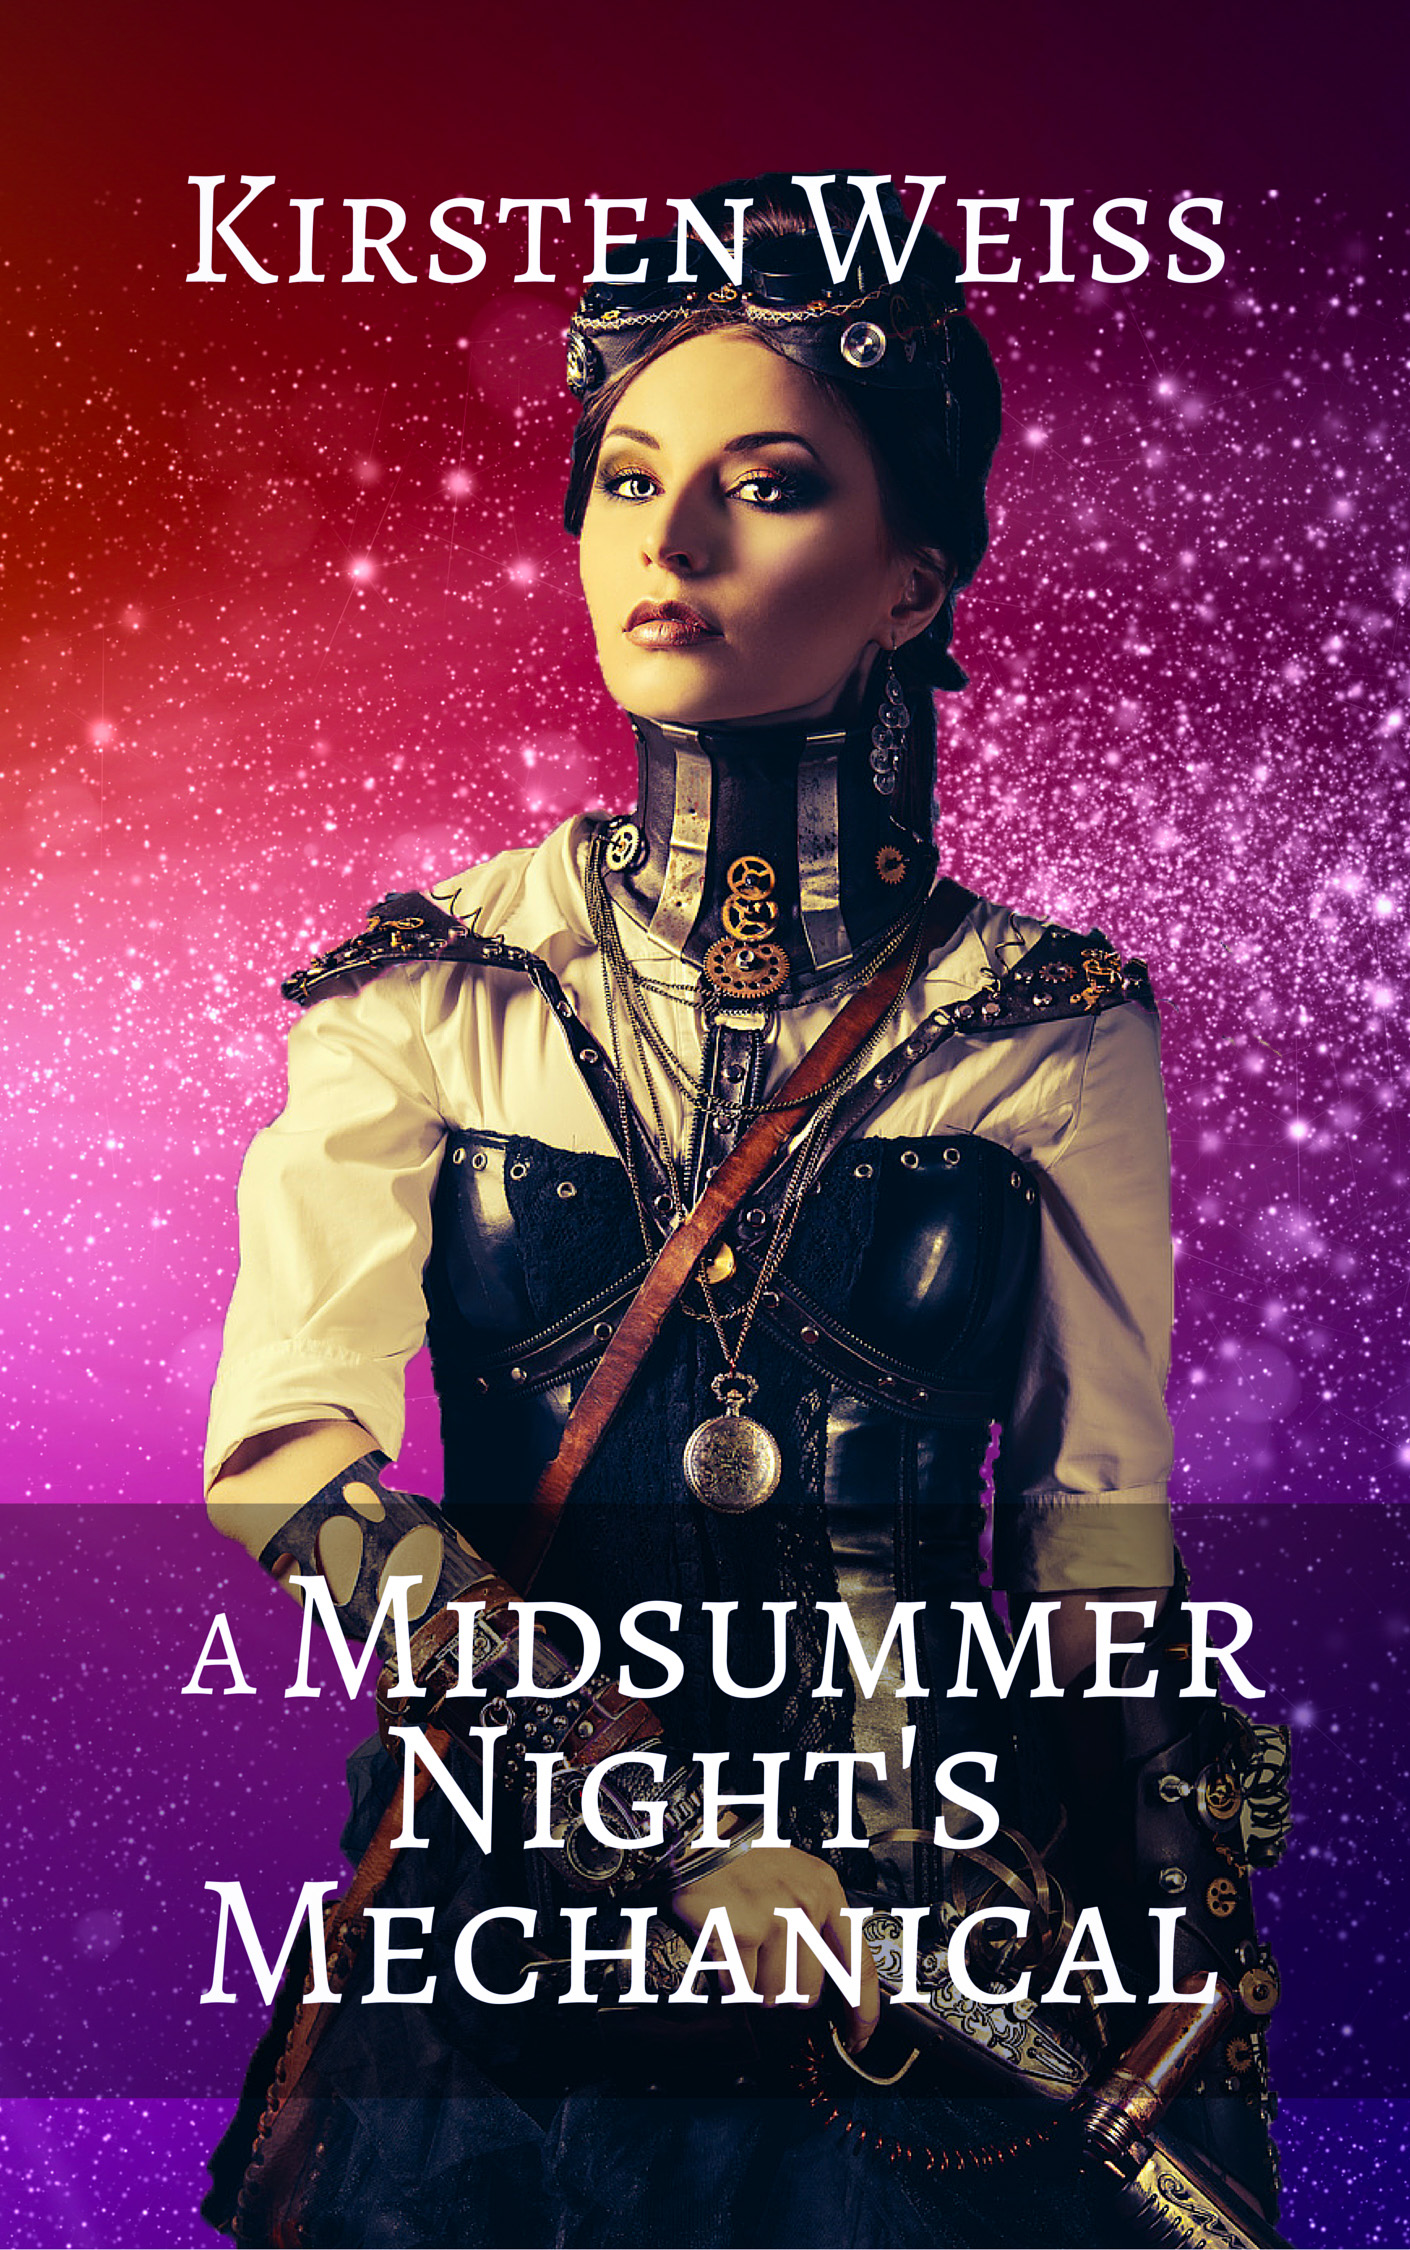 A Midsummer Night's Mechanical